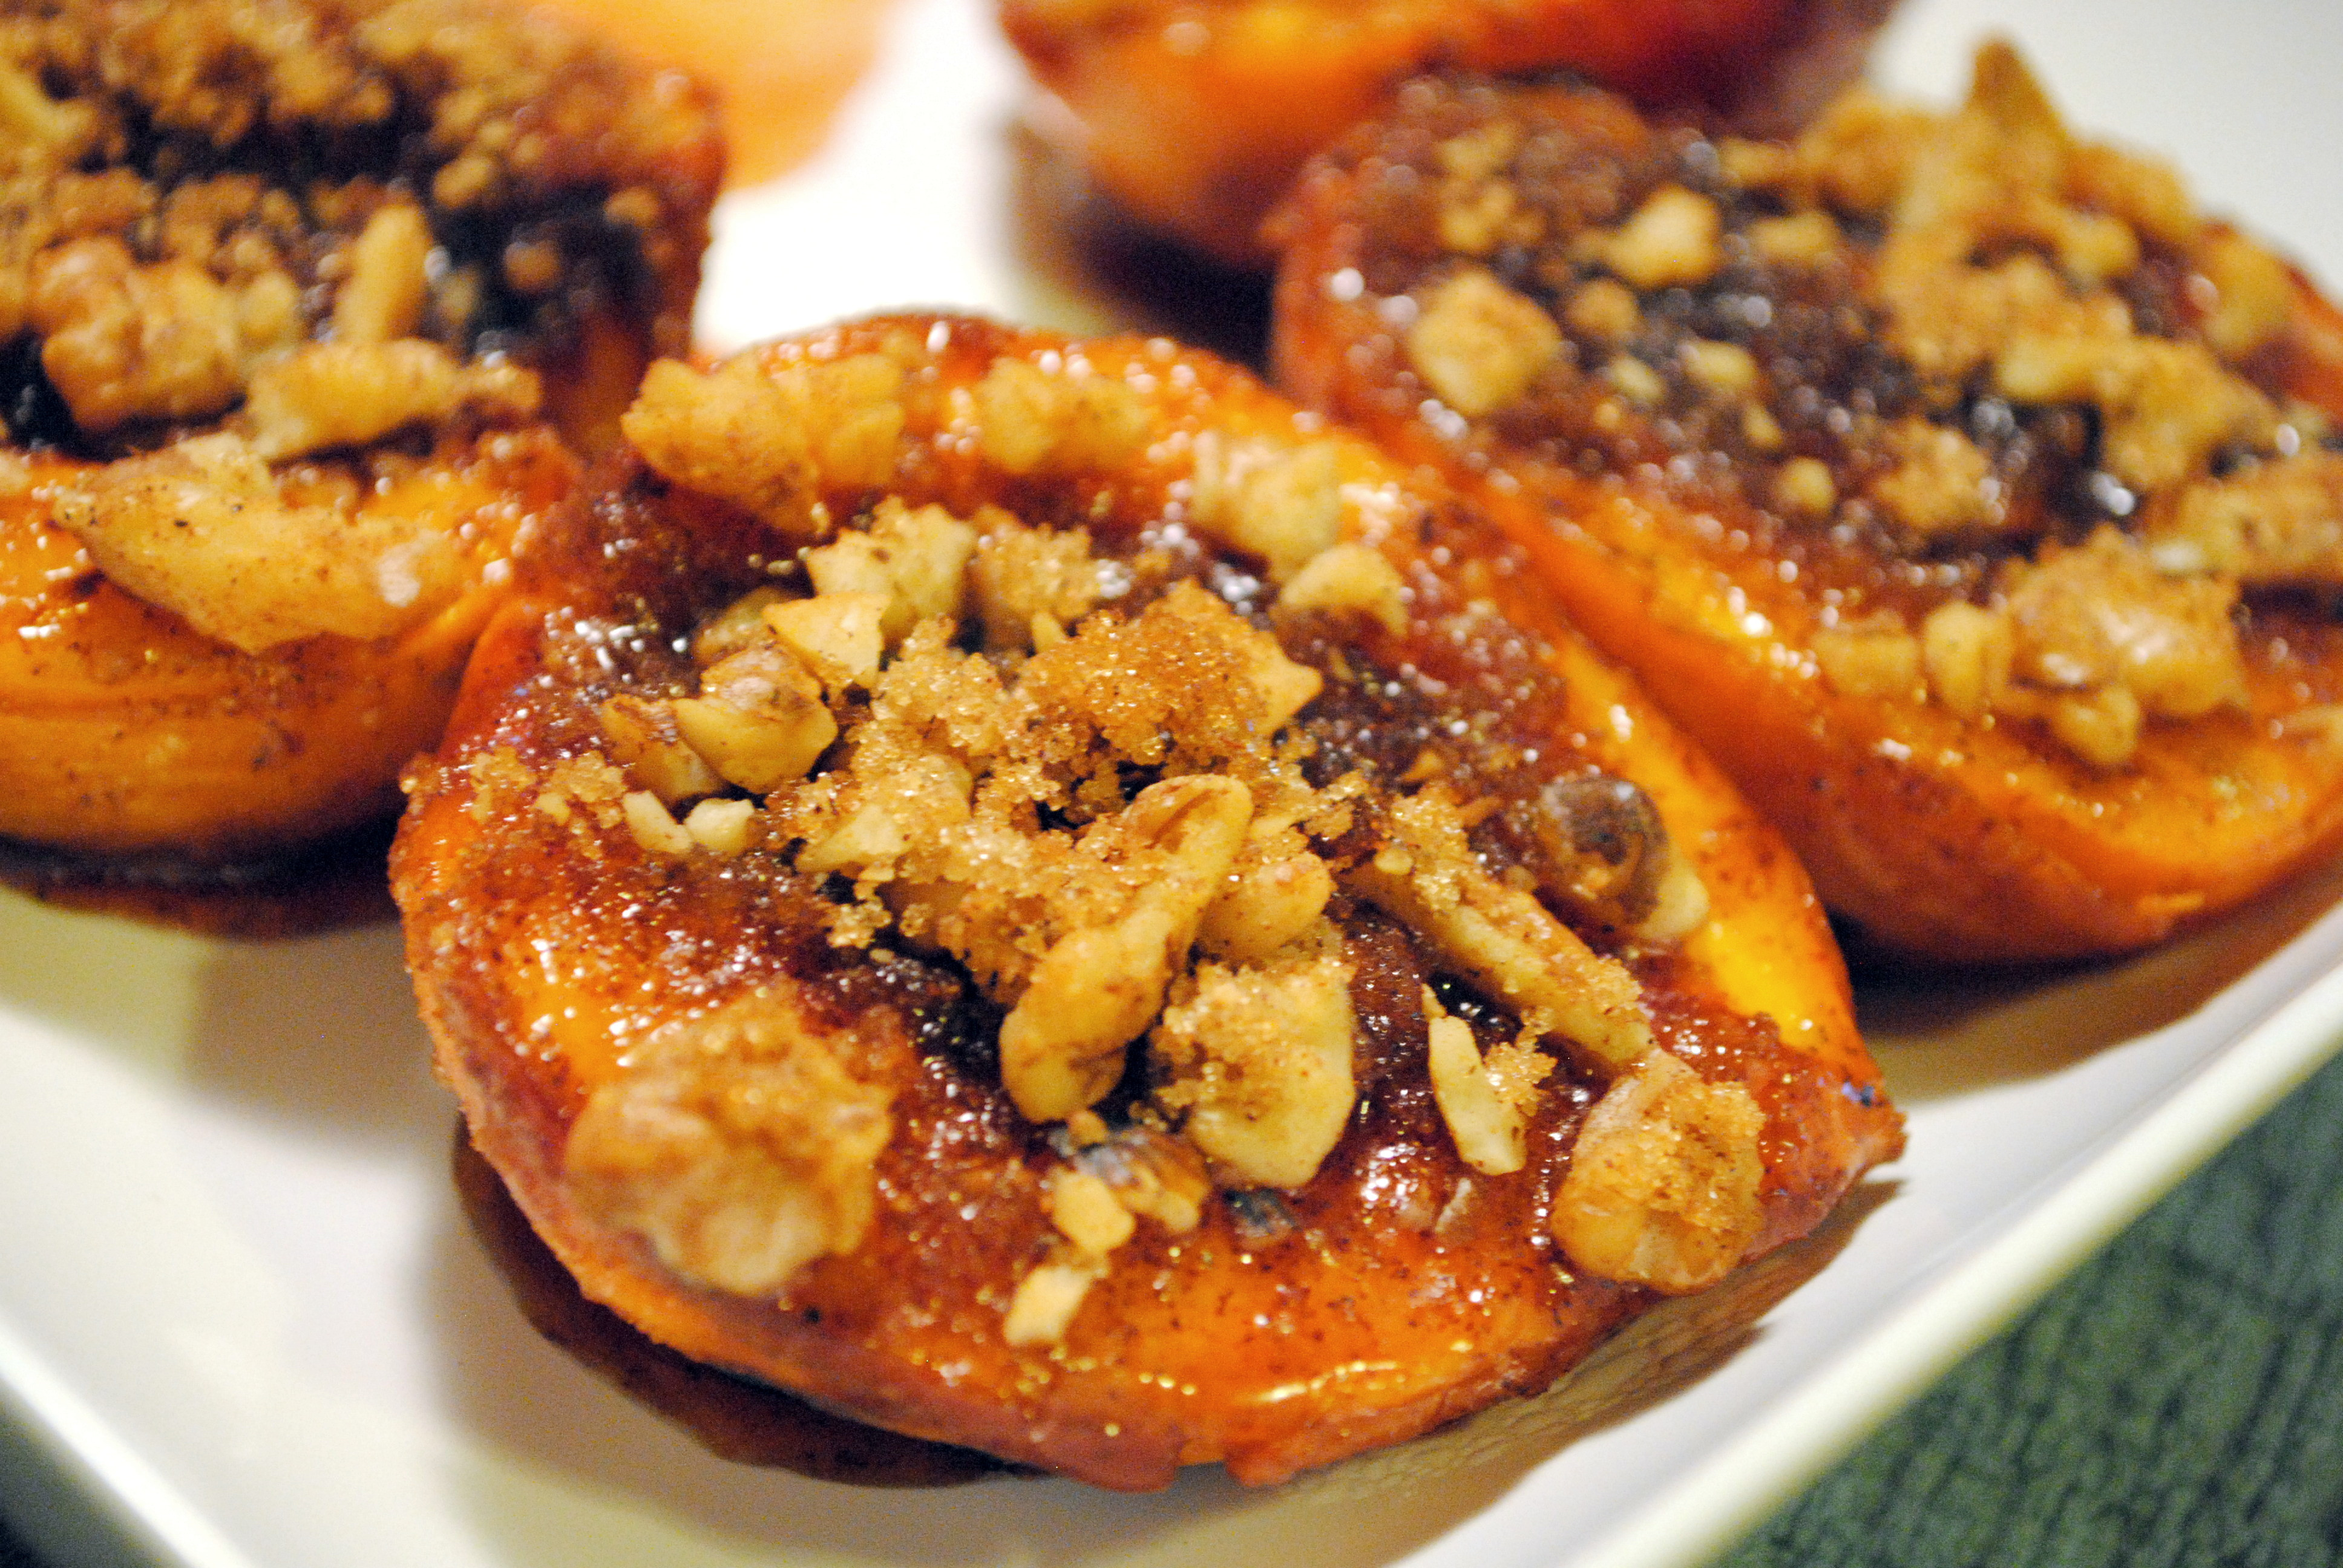 Grilled Peaches Dessert  Grilled Peaches With Brown Sugar and Cinnamon • The Cocina